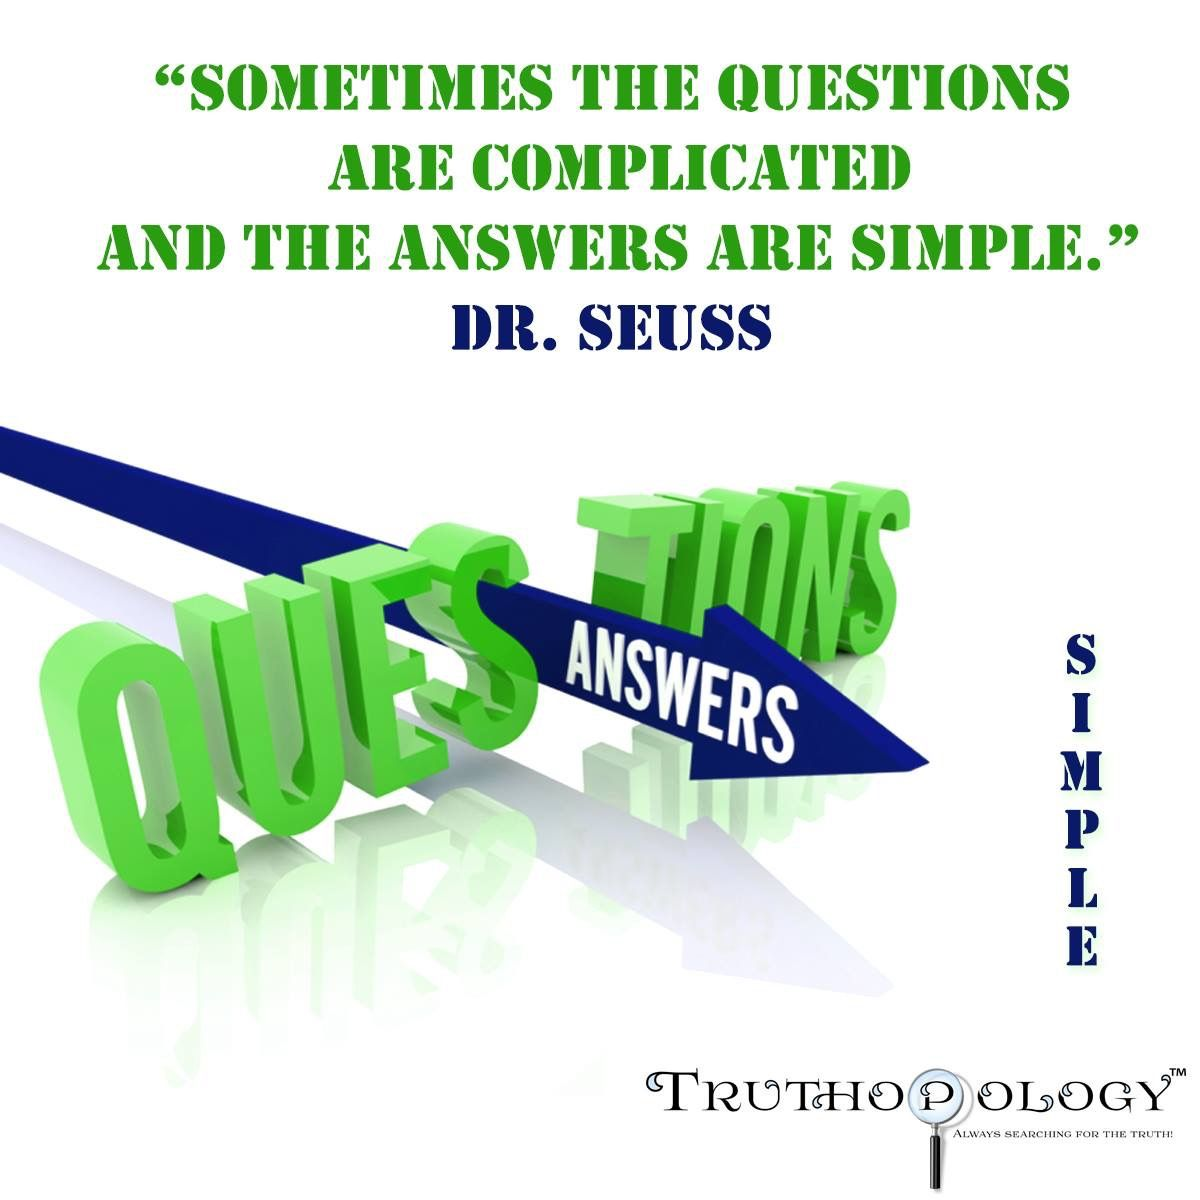 Simple truths in questions and answers. Part 1 19